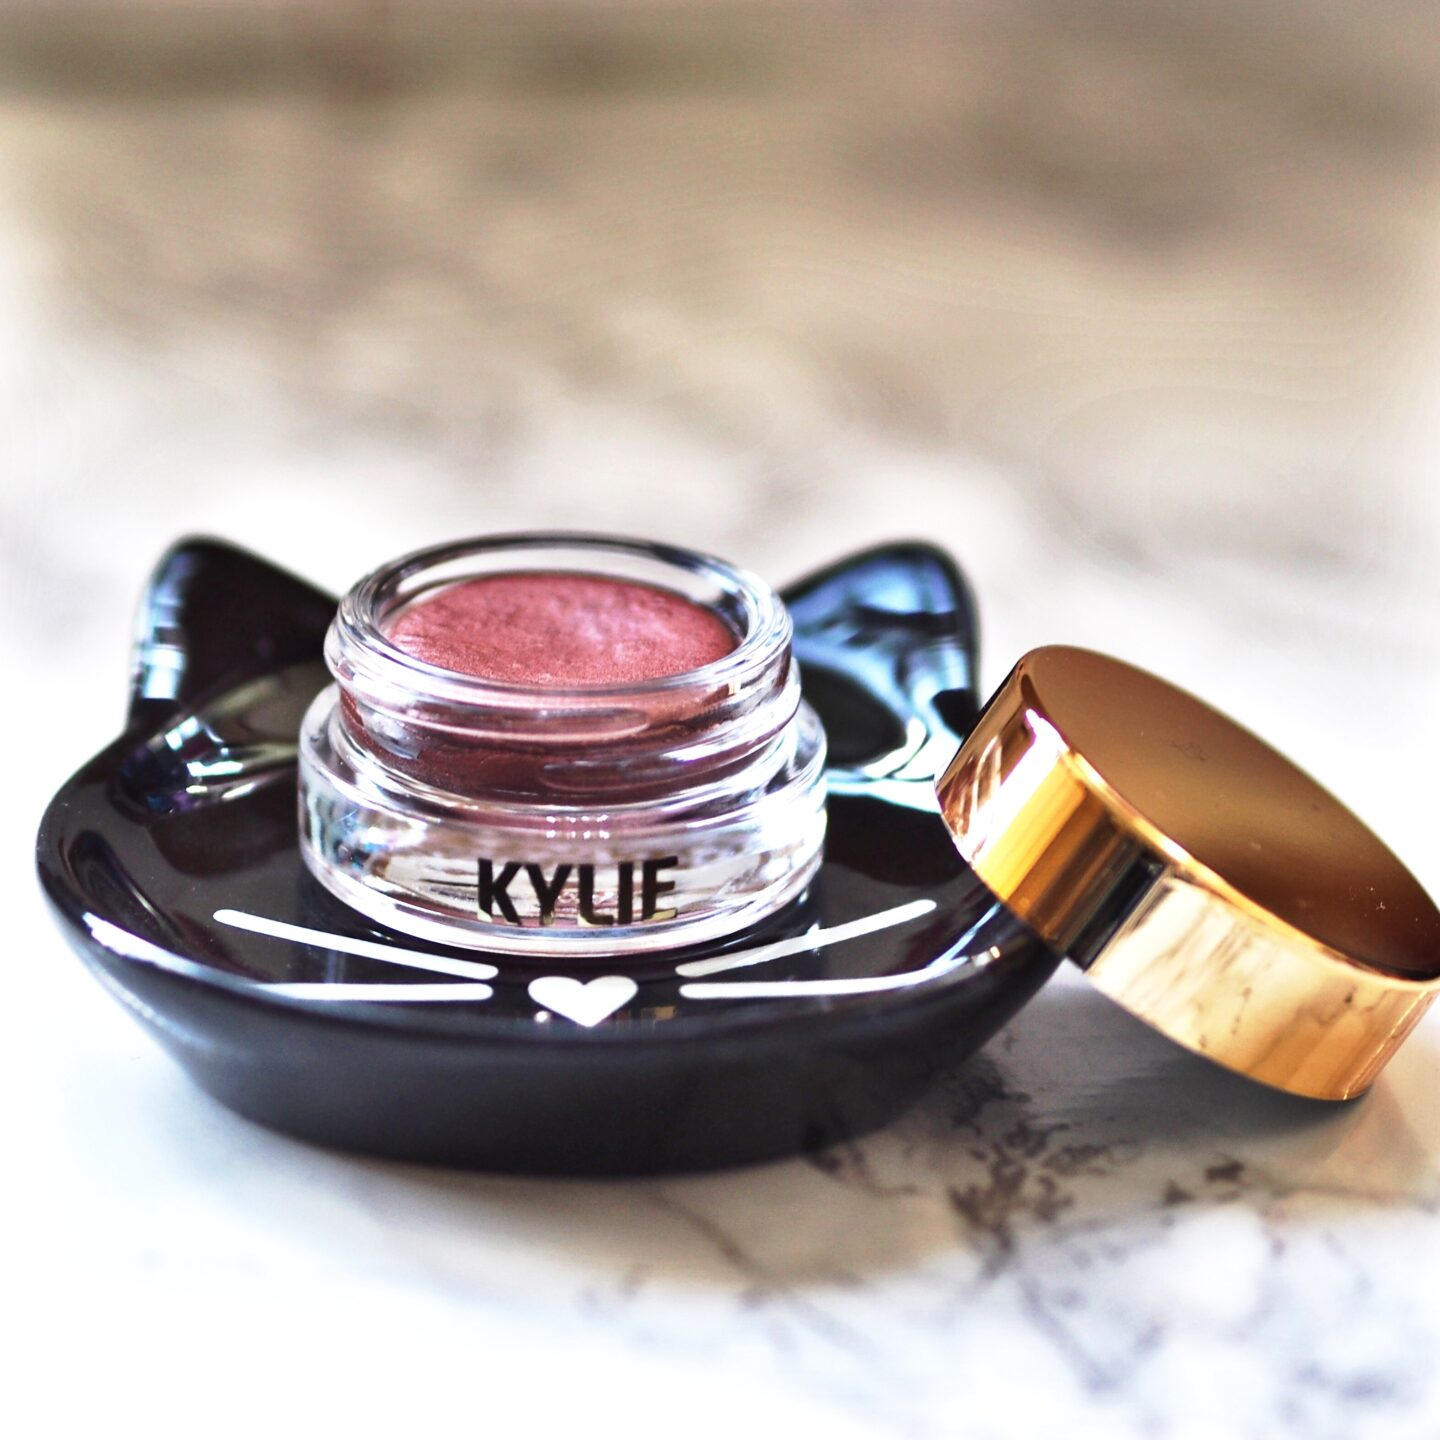 Kylie Cosmetics: First Impressions